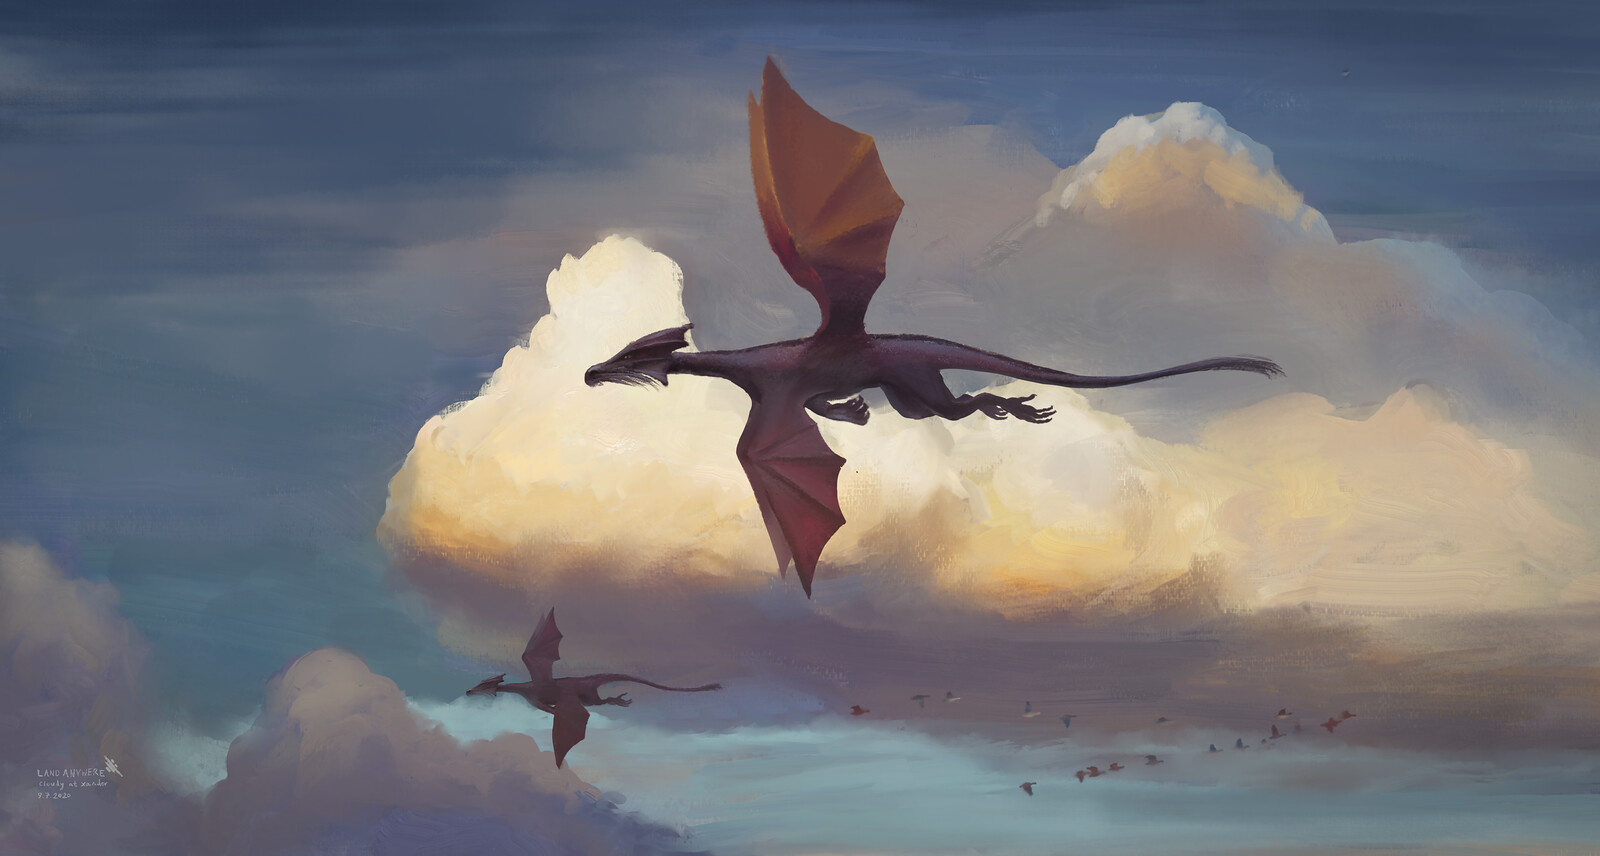 Cloudy at Xander - Flight of Dragons on a Cloudy Sky